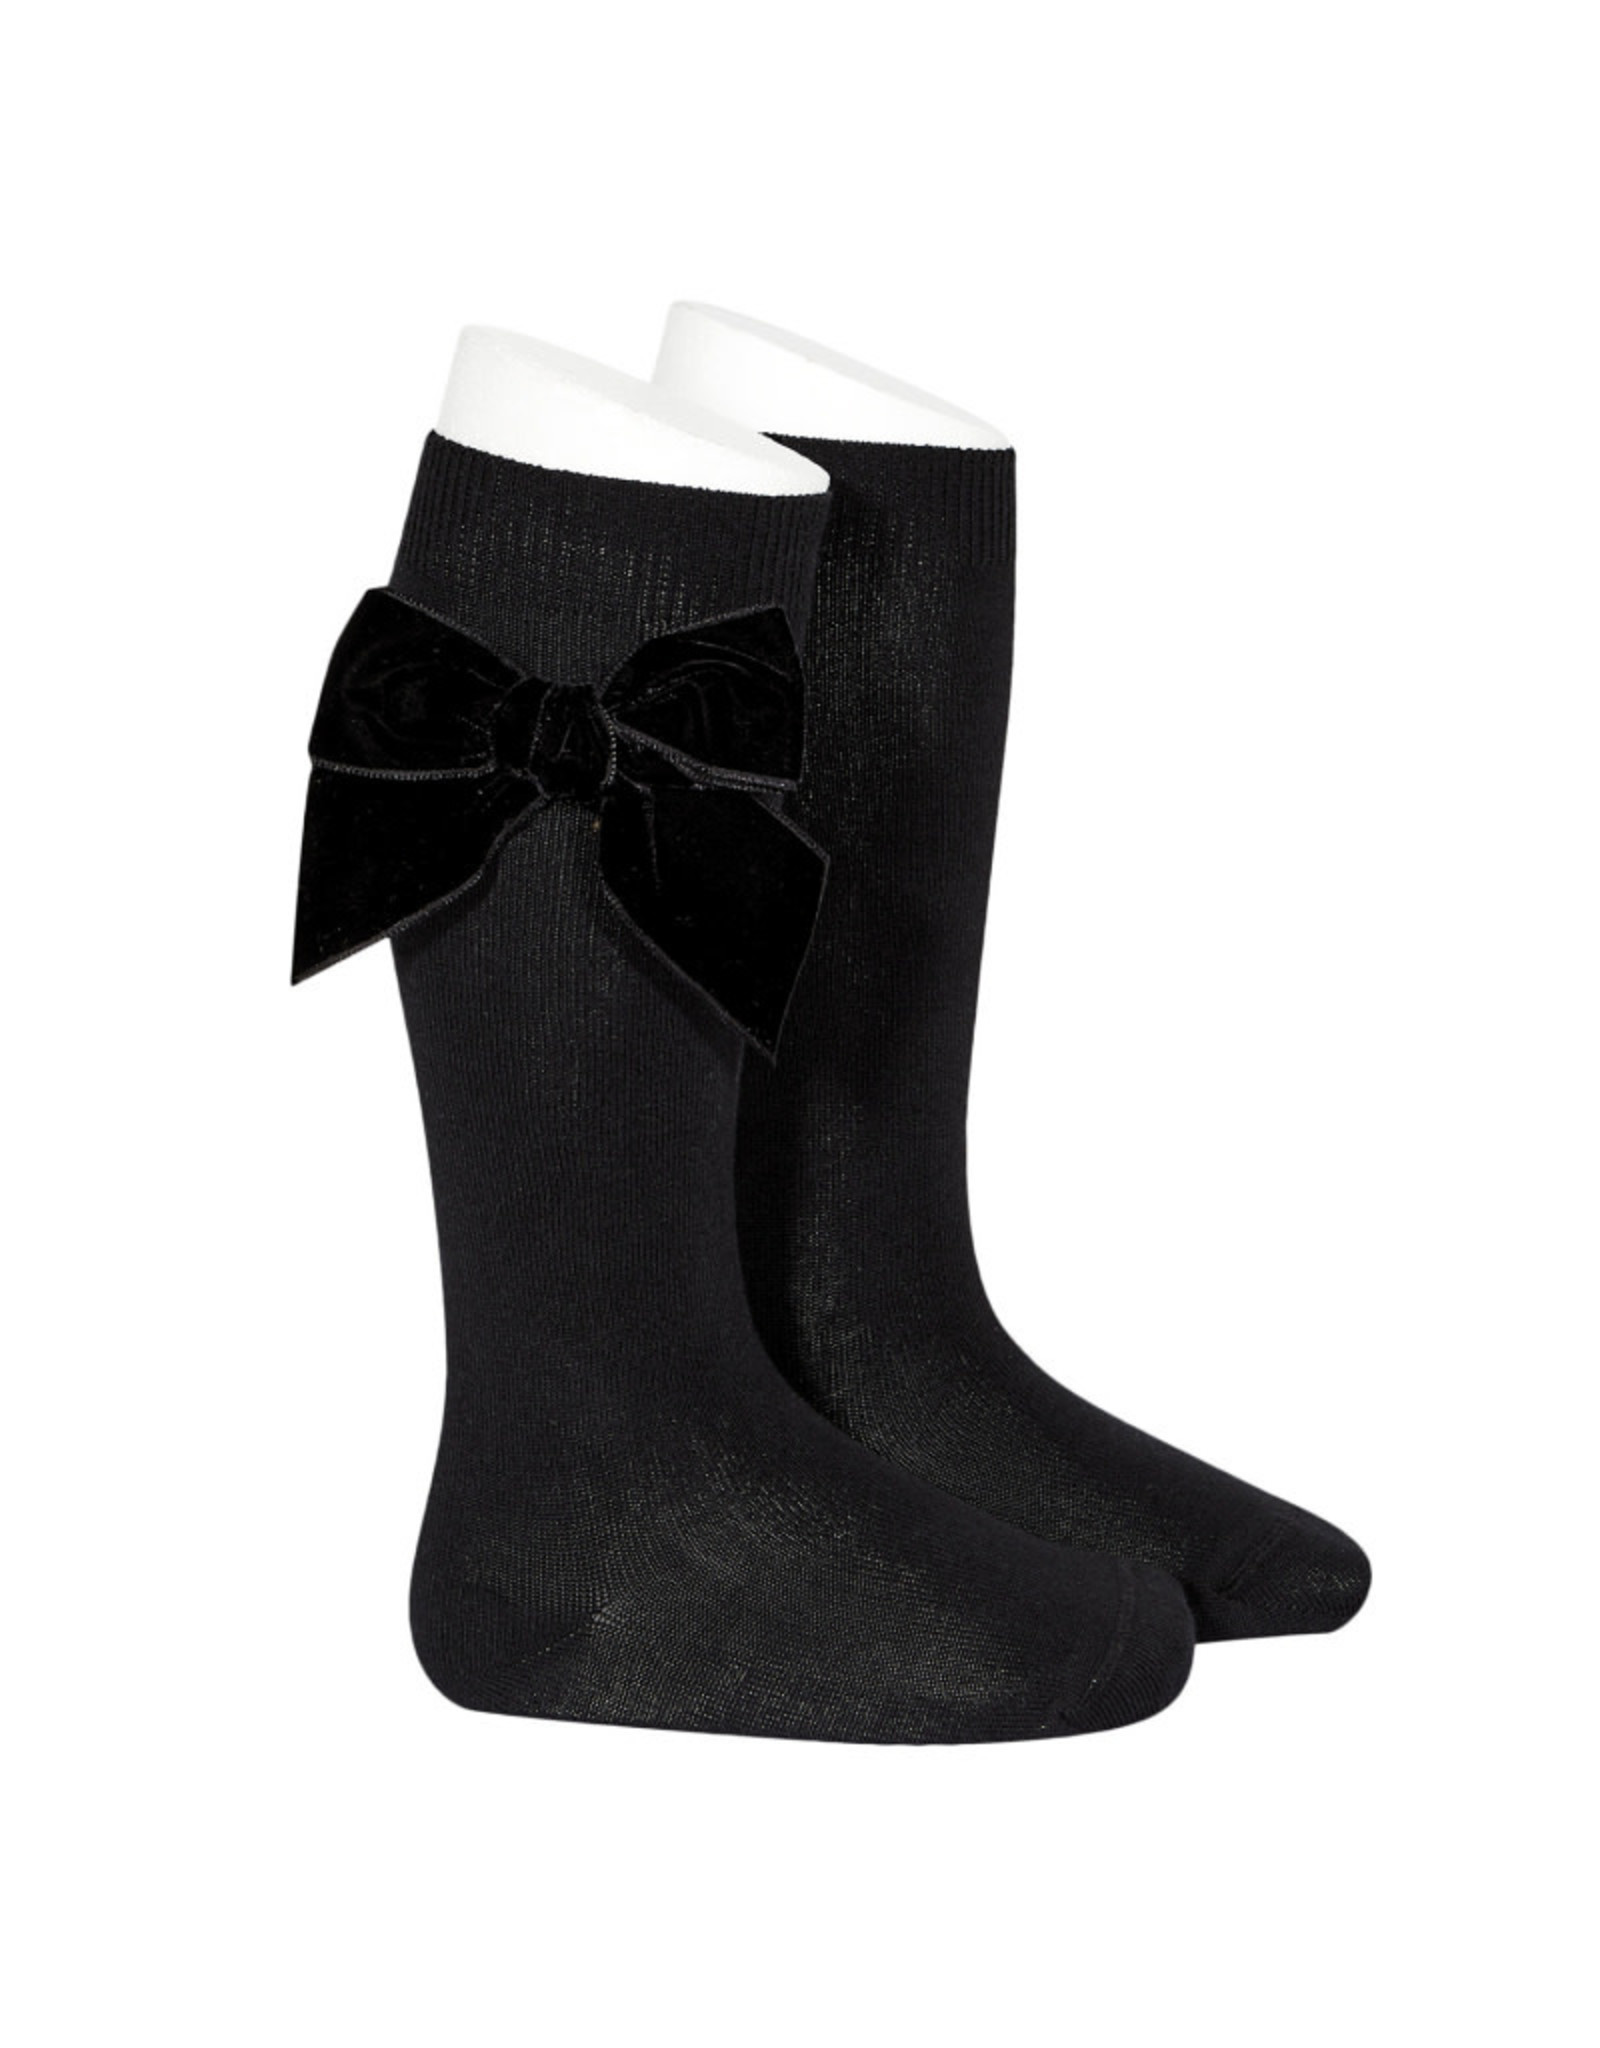 CONDOR Black Velvet Bow Socks